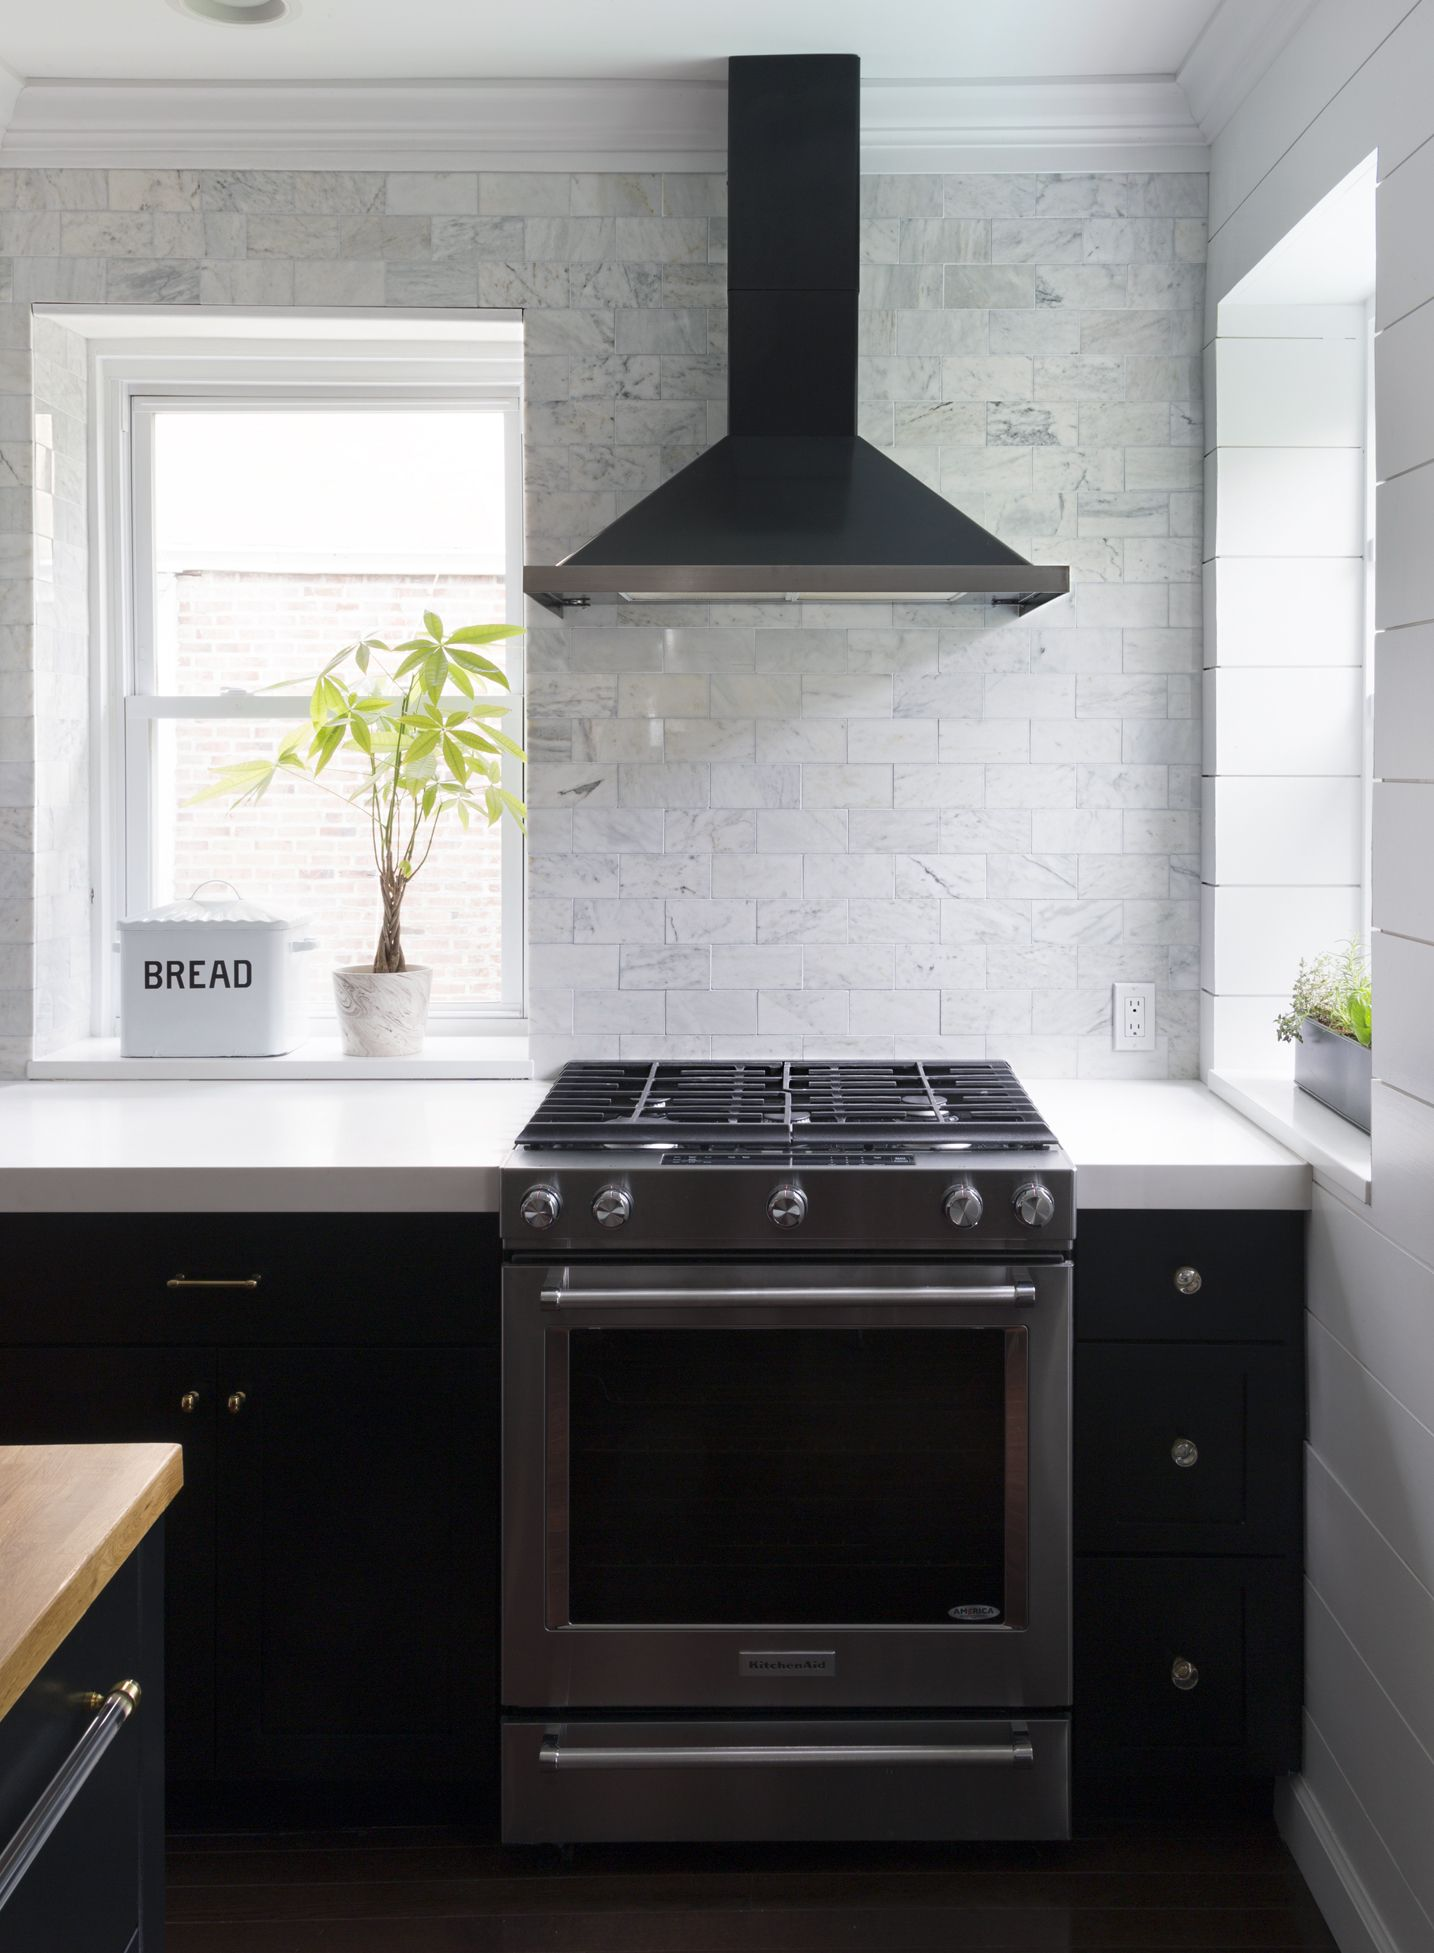 Best Kitchen Gallery: Black Kitchen With Full Wall Of White Marble Tile Black Range Hood of Kitchen With Hood on rachelxblog.com